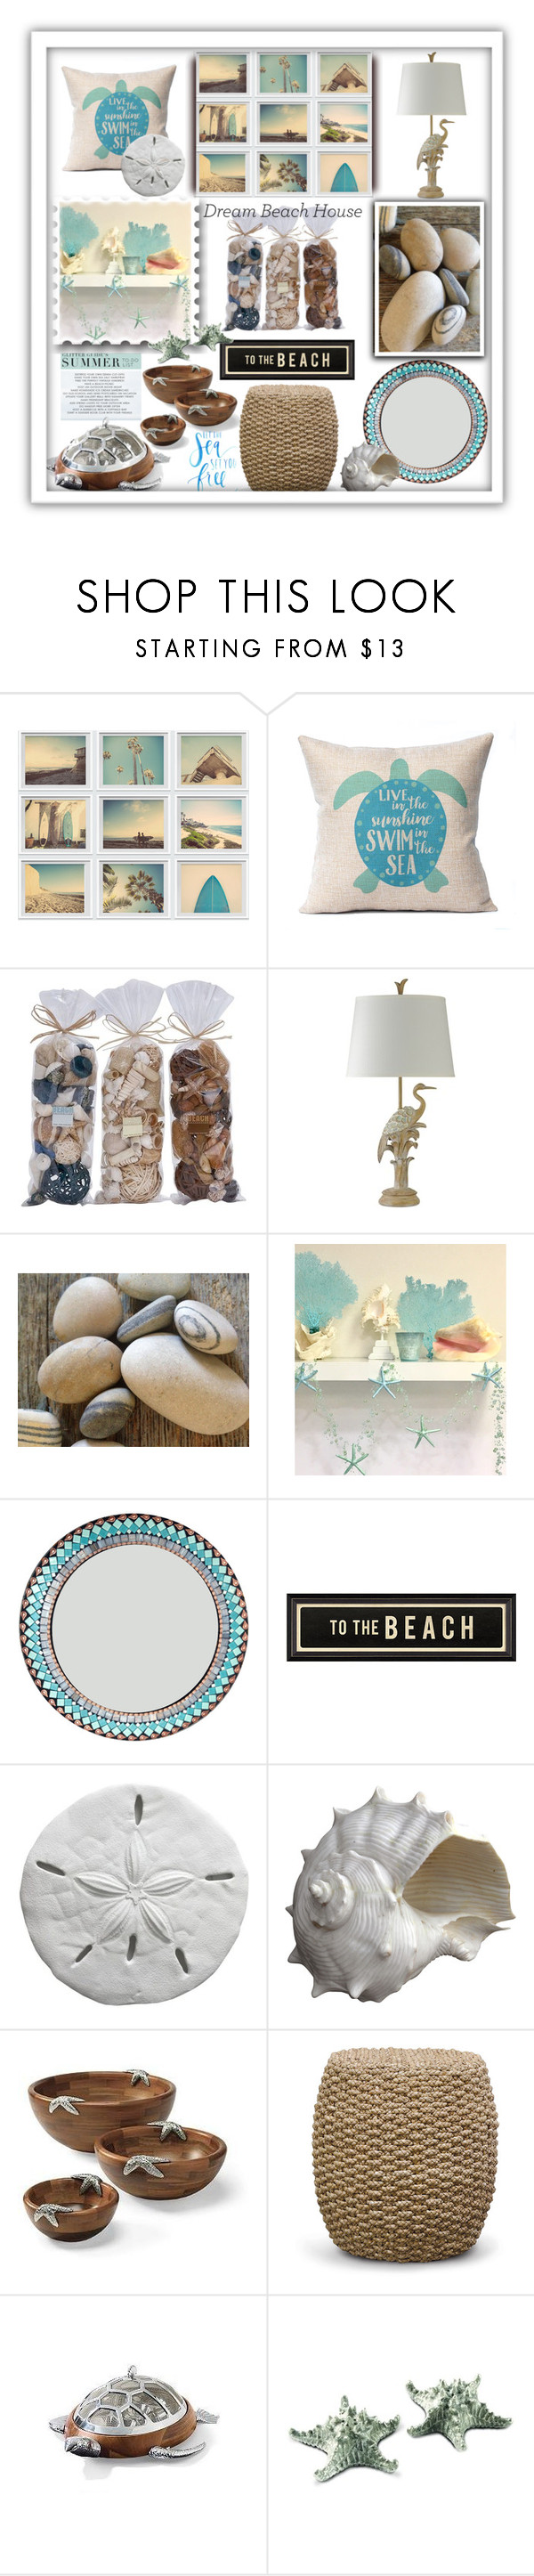 """Live in the Sunshine"" by deaniefrank ❤ liked on Polyvore featuring interior, interiors, interior design, home, home decor, interior decorating, Stylecraft, Artisan, Fetco and Oly"